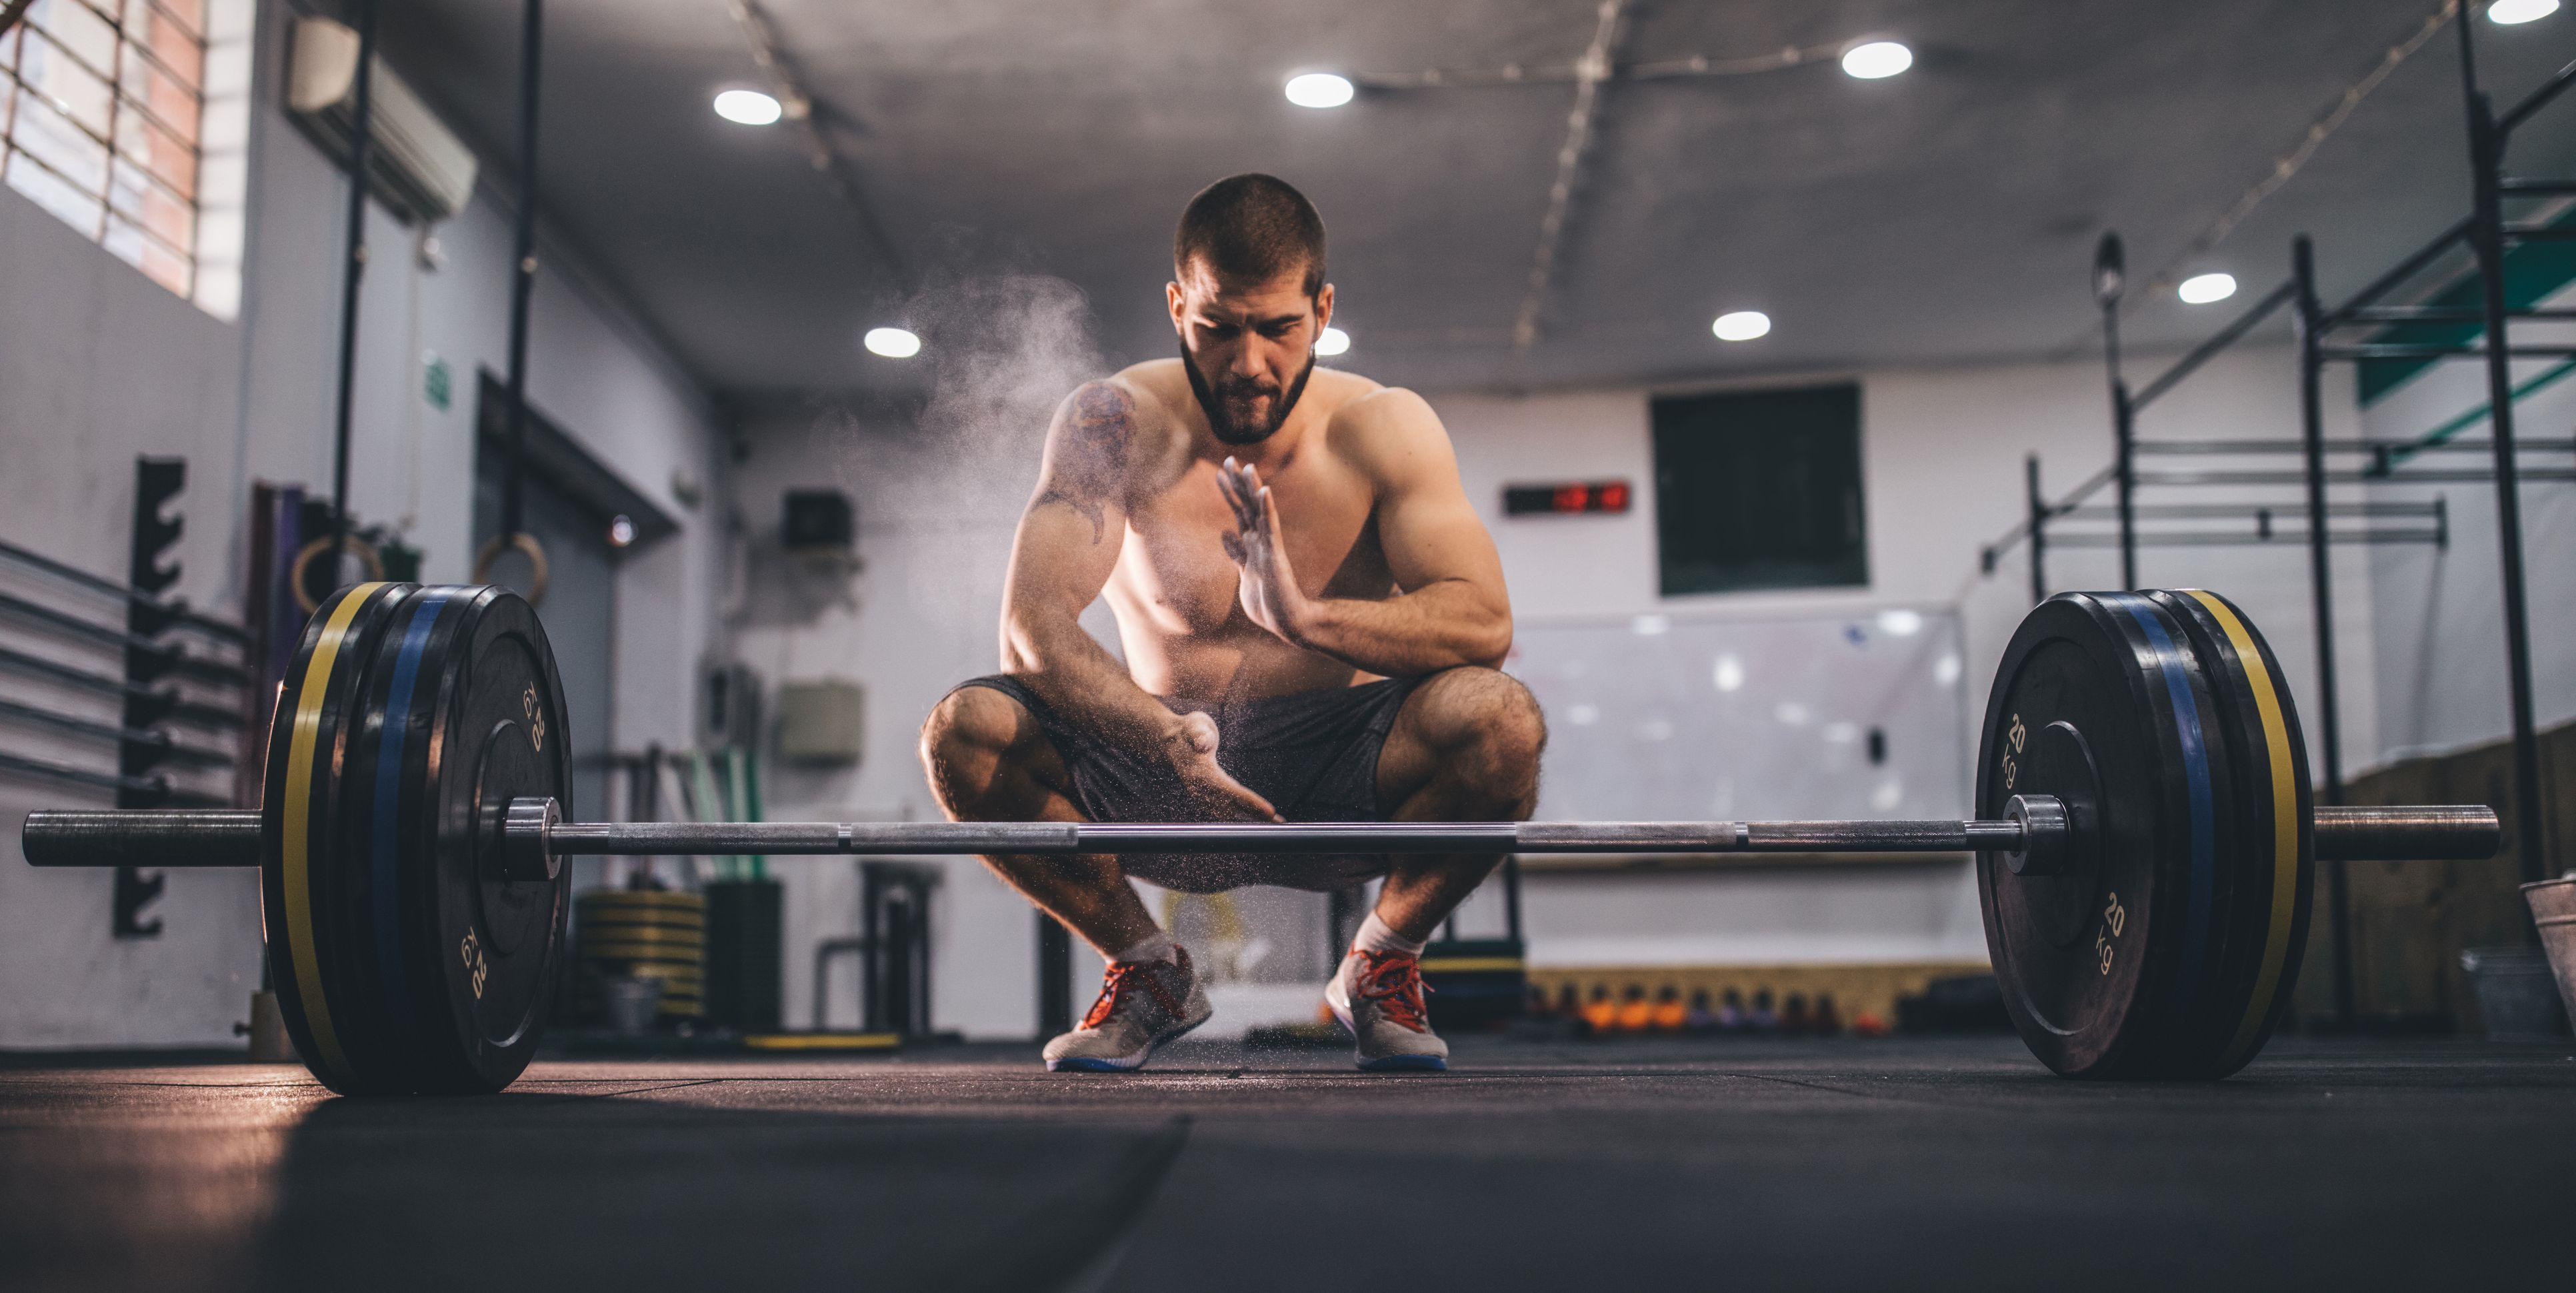 Strong man doing deadlift training in gym